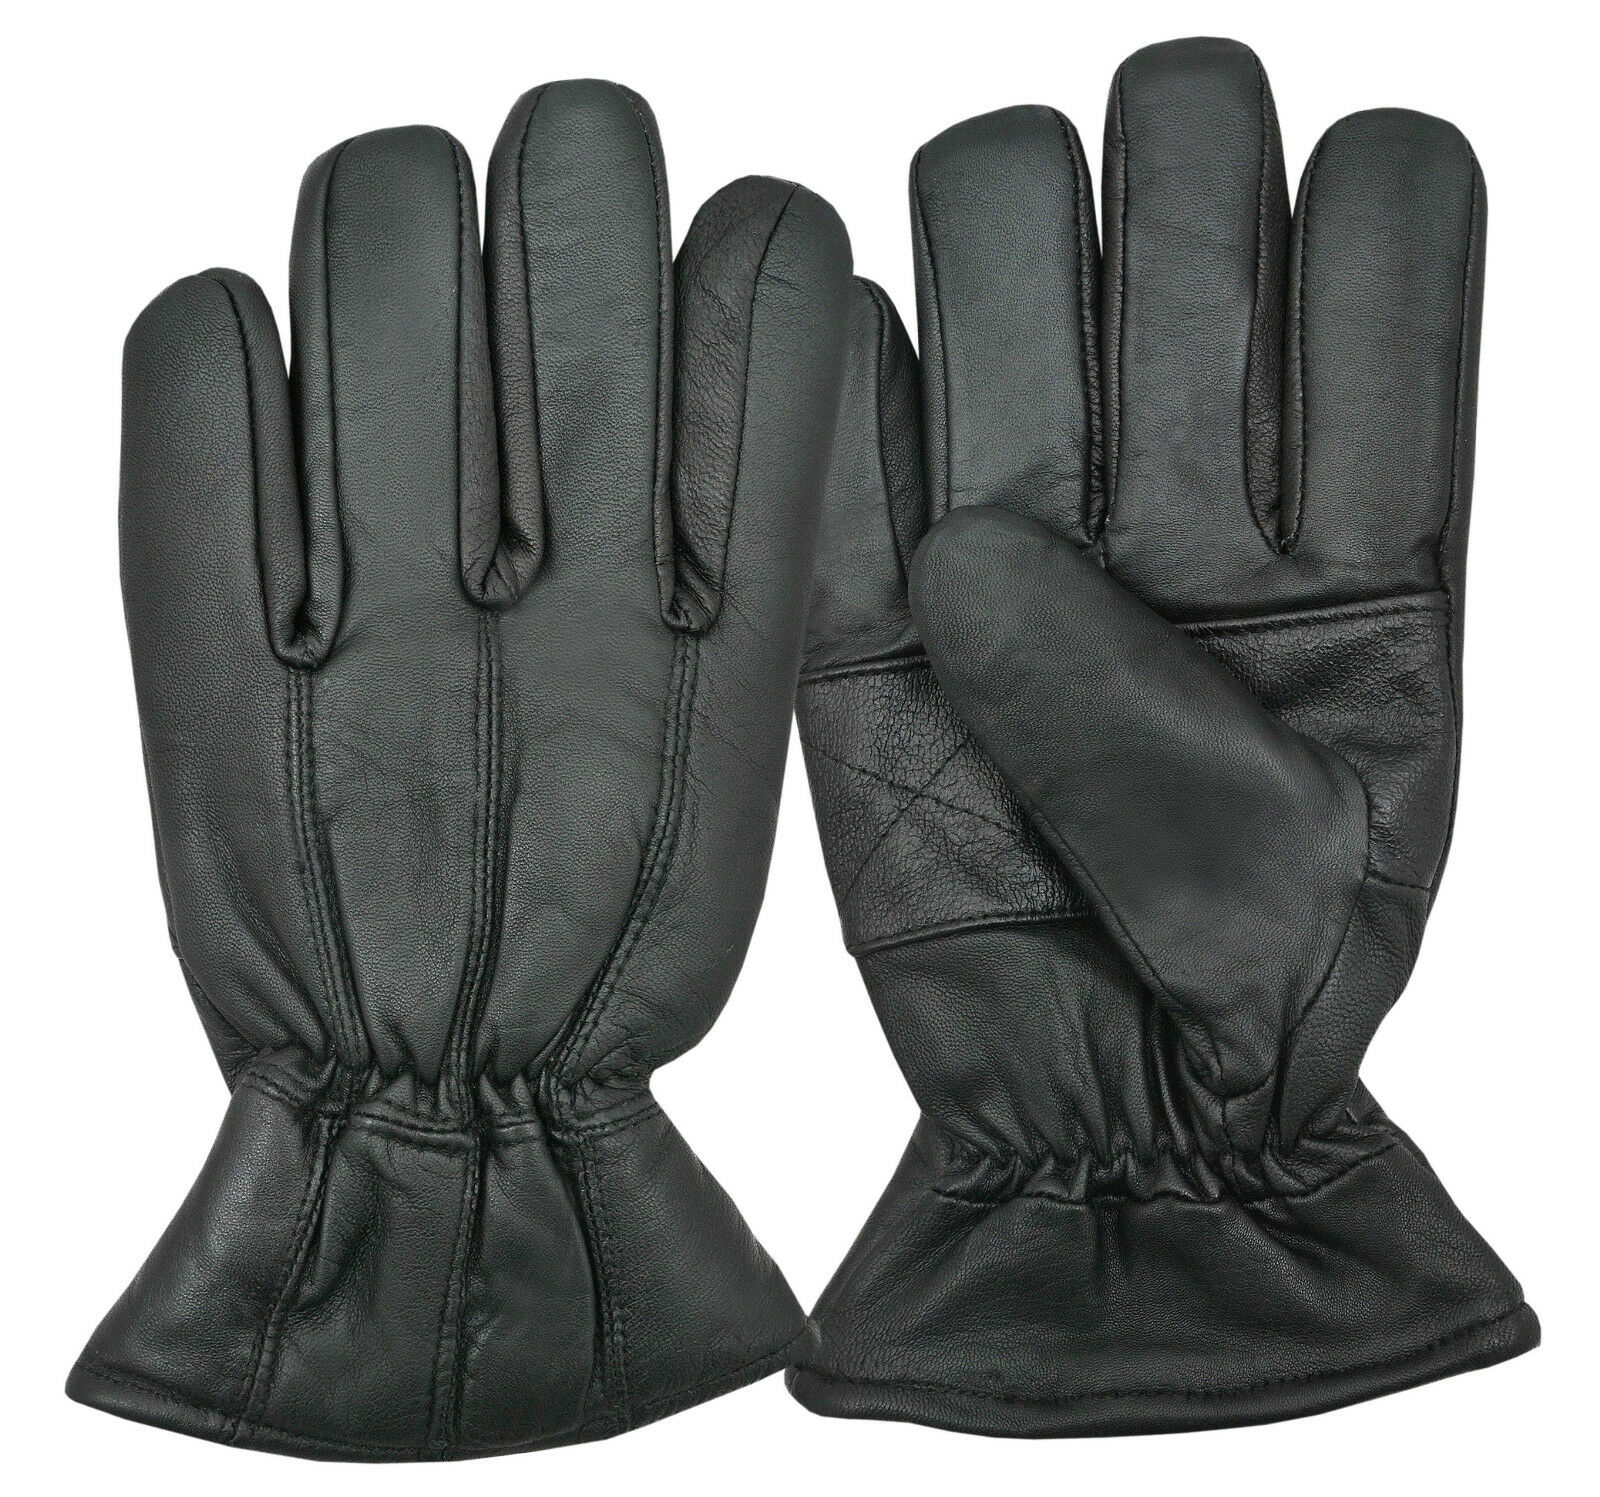 Black Luxury Winter Warm Thermal Fleece Lined Leather Gloves Dressing Driving